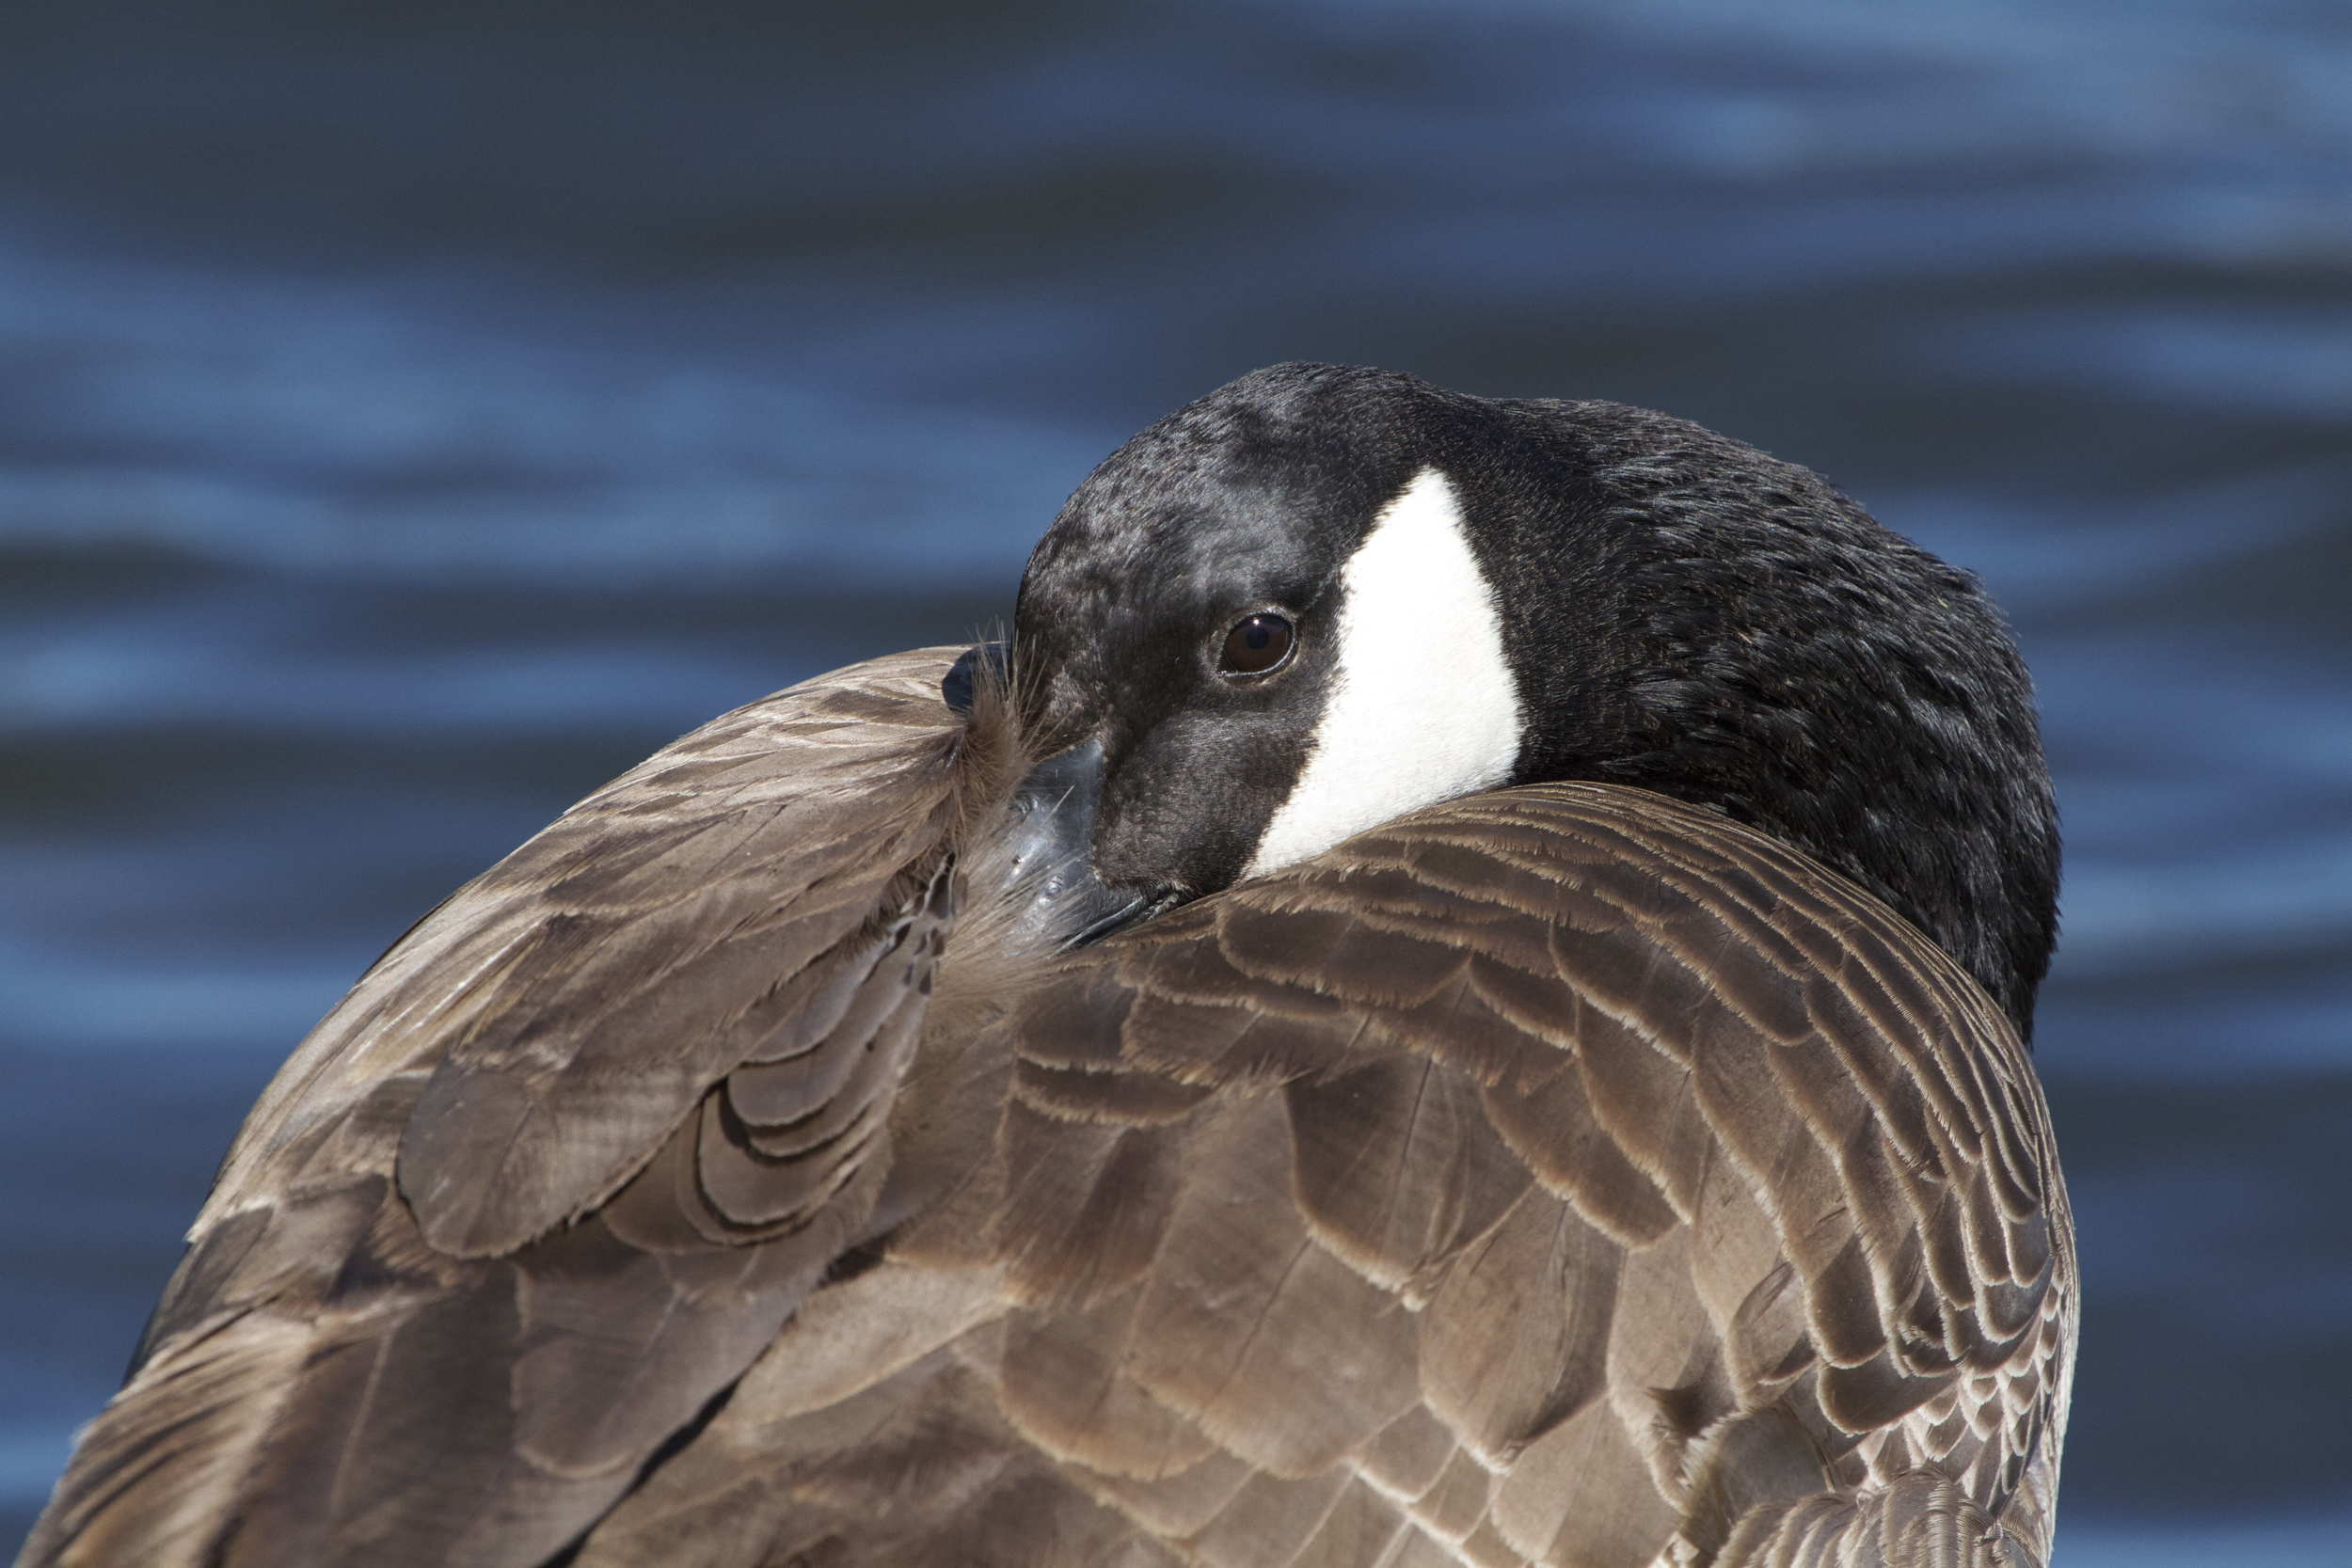 A Canada Goose naps at my feet.